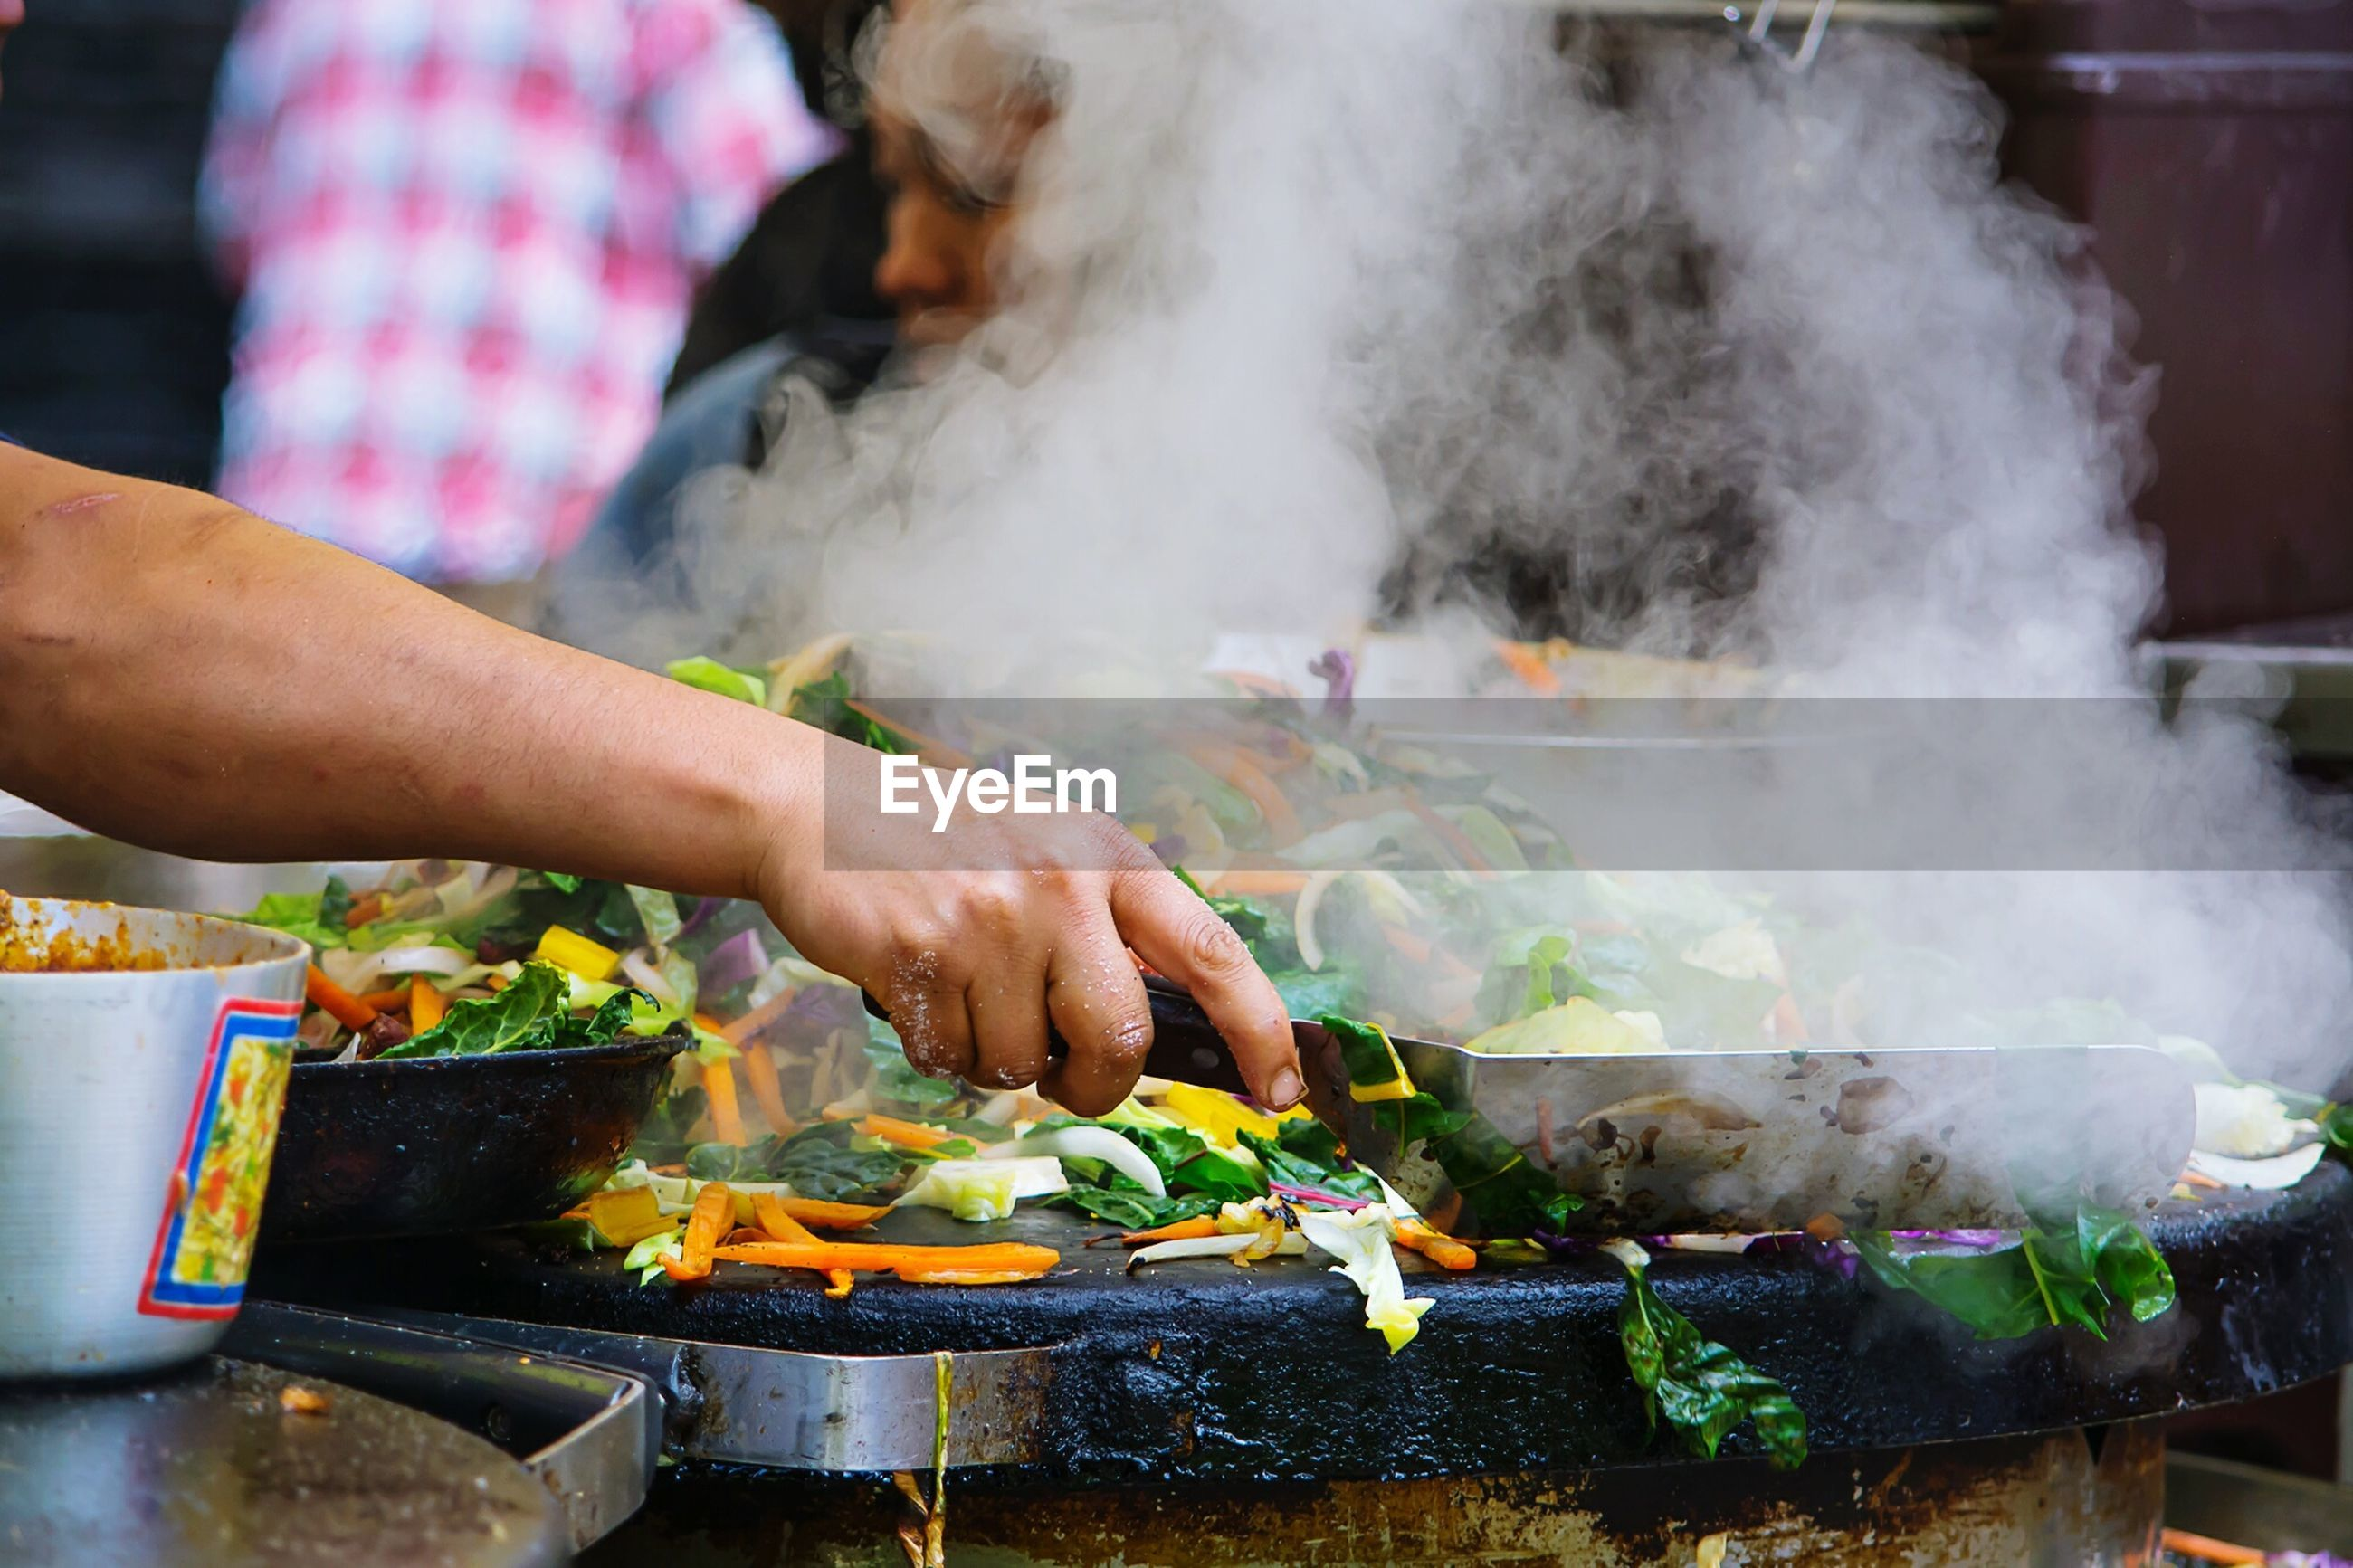 Cropped image of person preparing vegetables at market stall